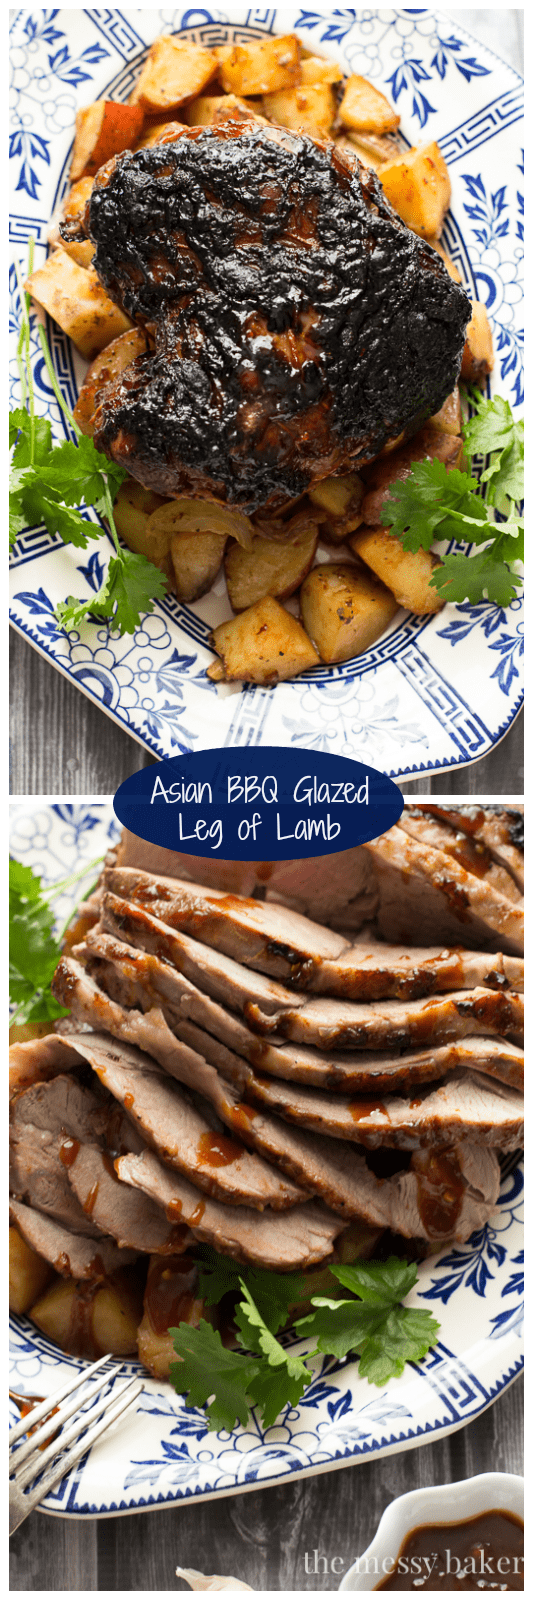 Asian BBQ Glazed Leg of Lamb | www.themessybakerblog.com